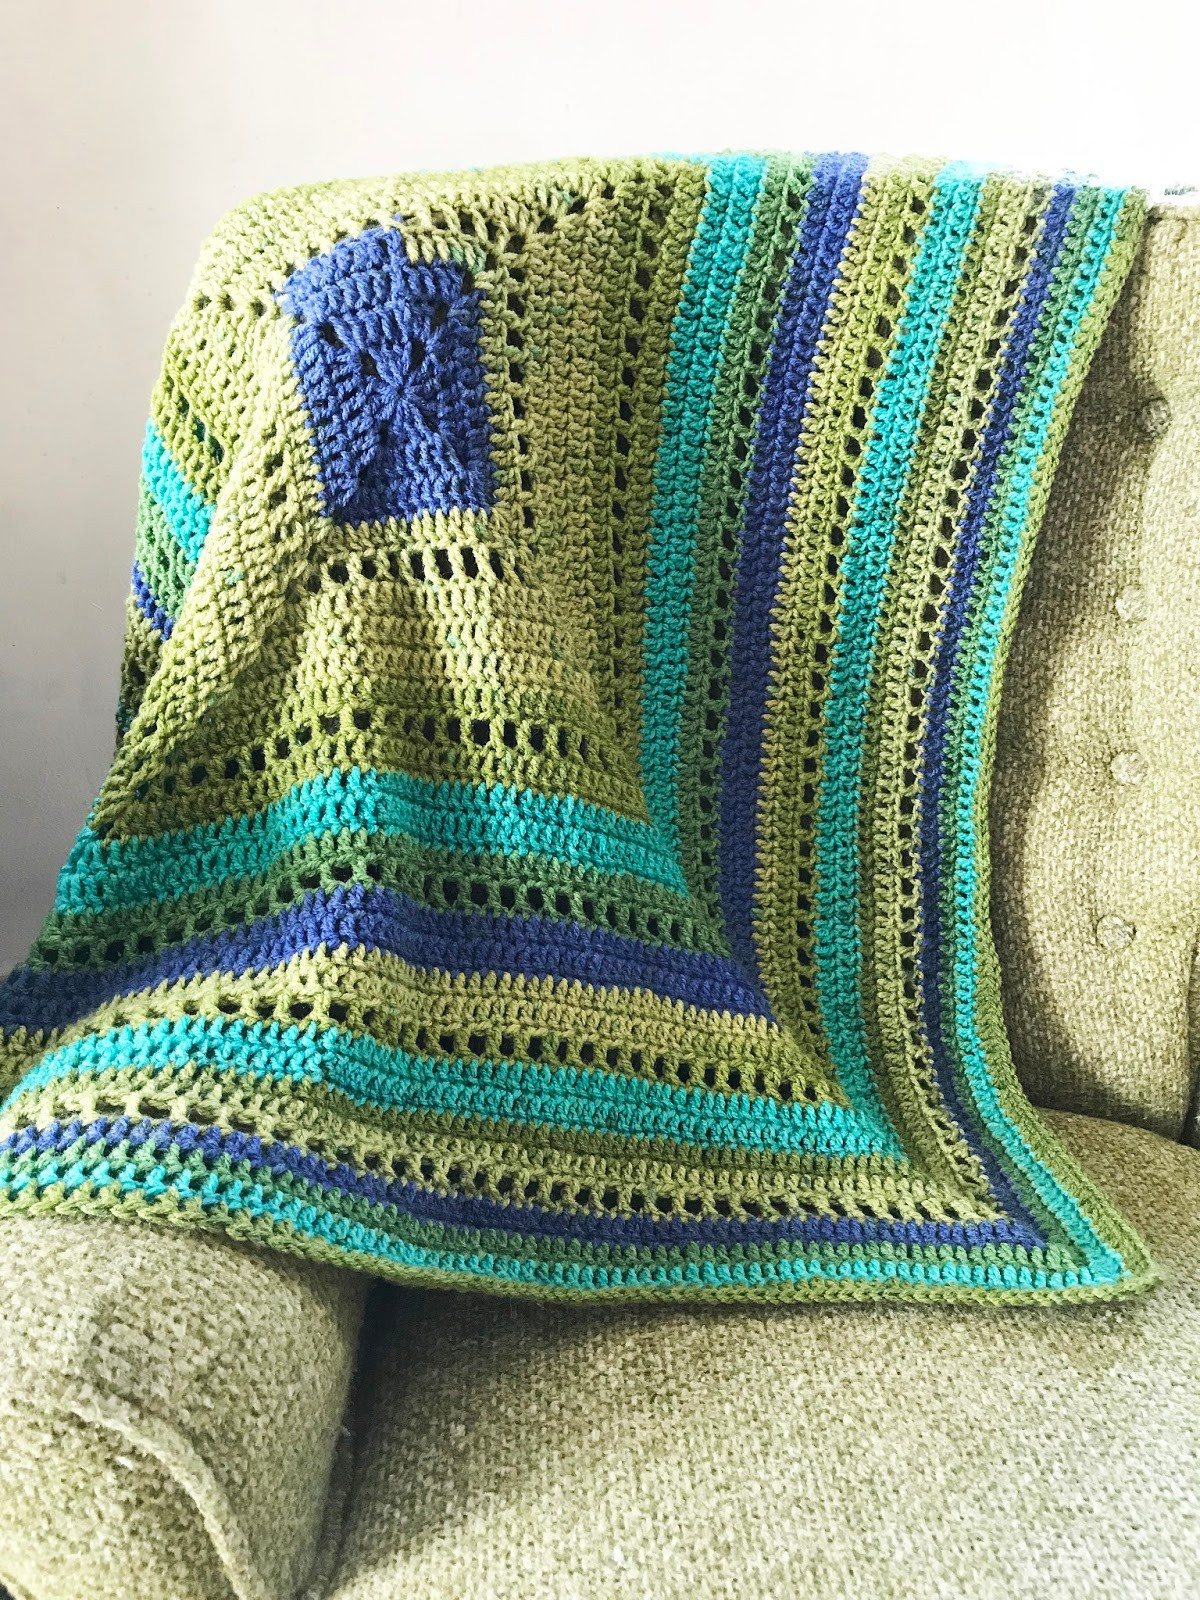 Best Of 16 Crochet Patterns Using Caron Cakes Maria S Blue Crayon Caron Tea Cakes Patterns Of Incredible 46 Pics Caron Tea Cakes Patterns